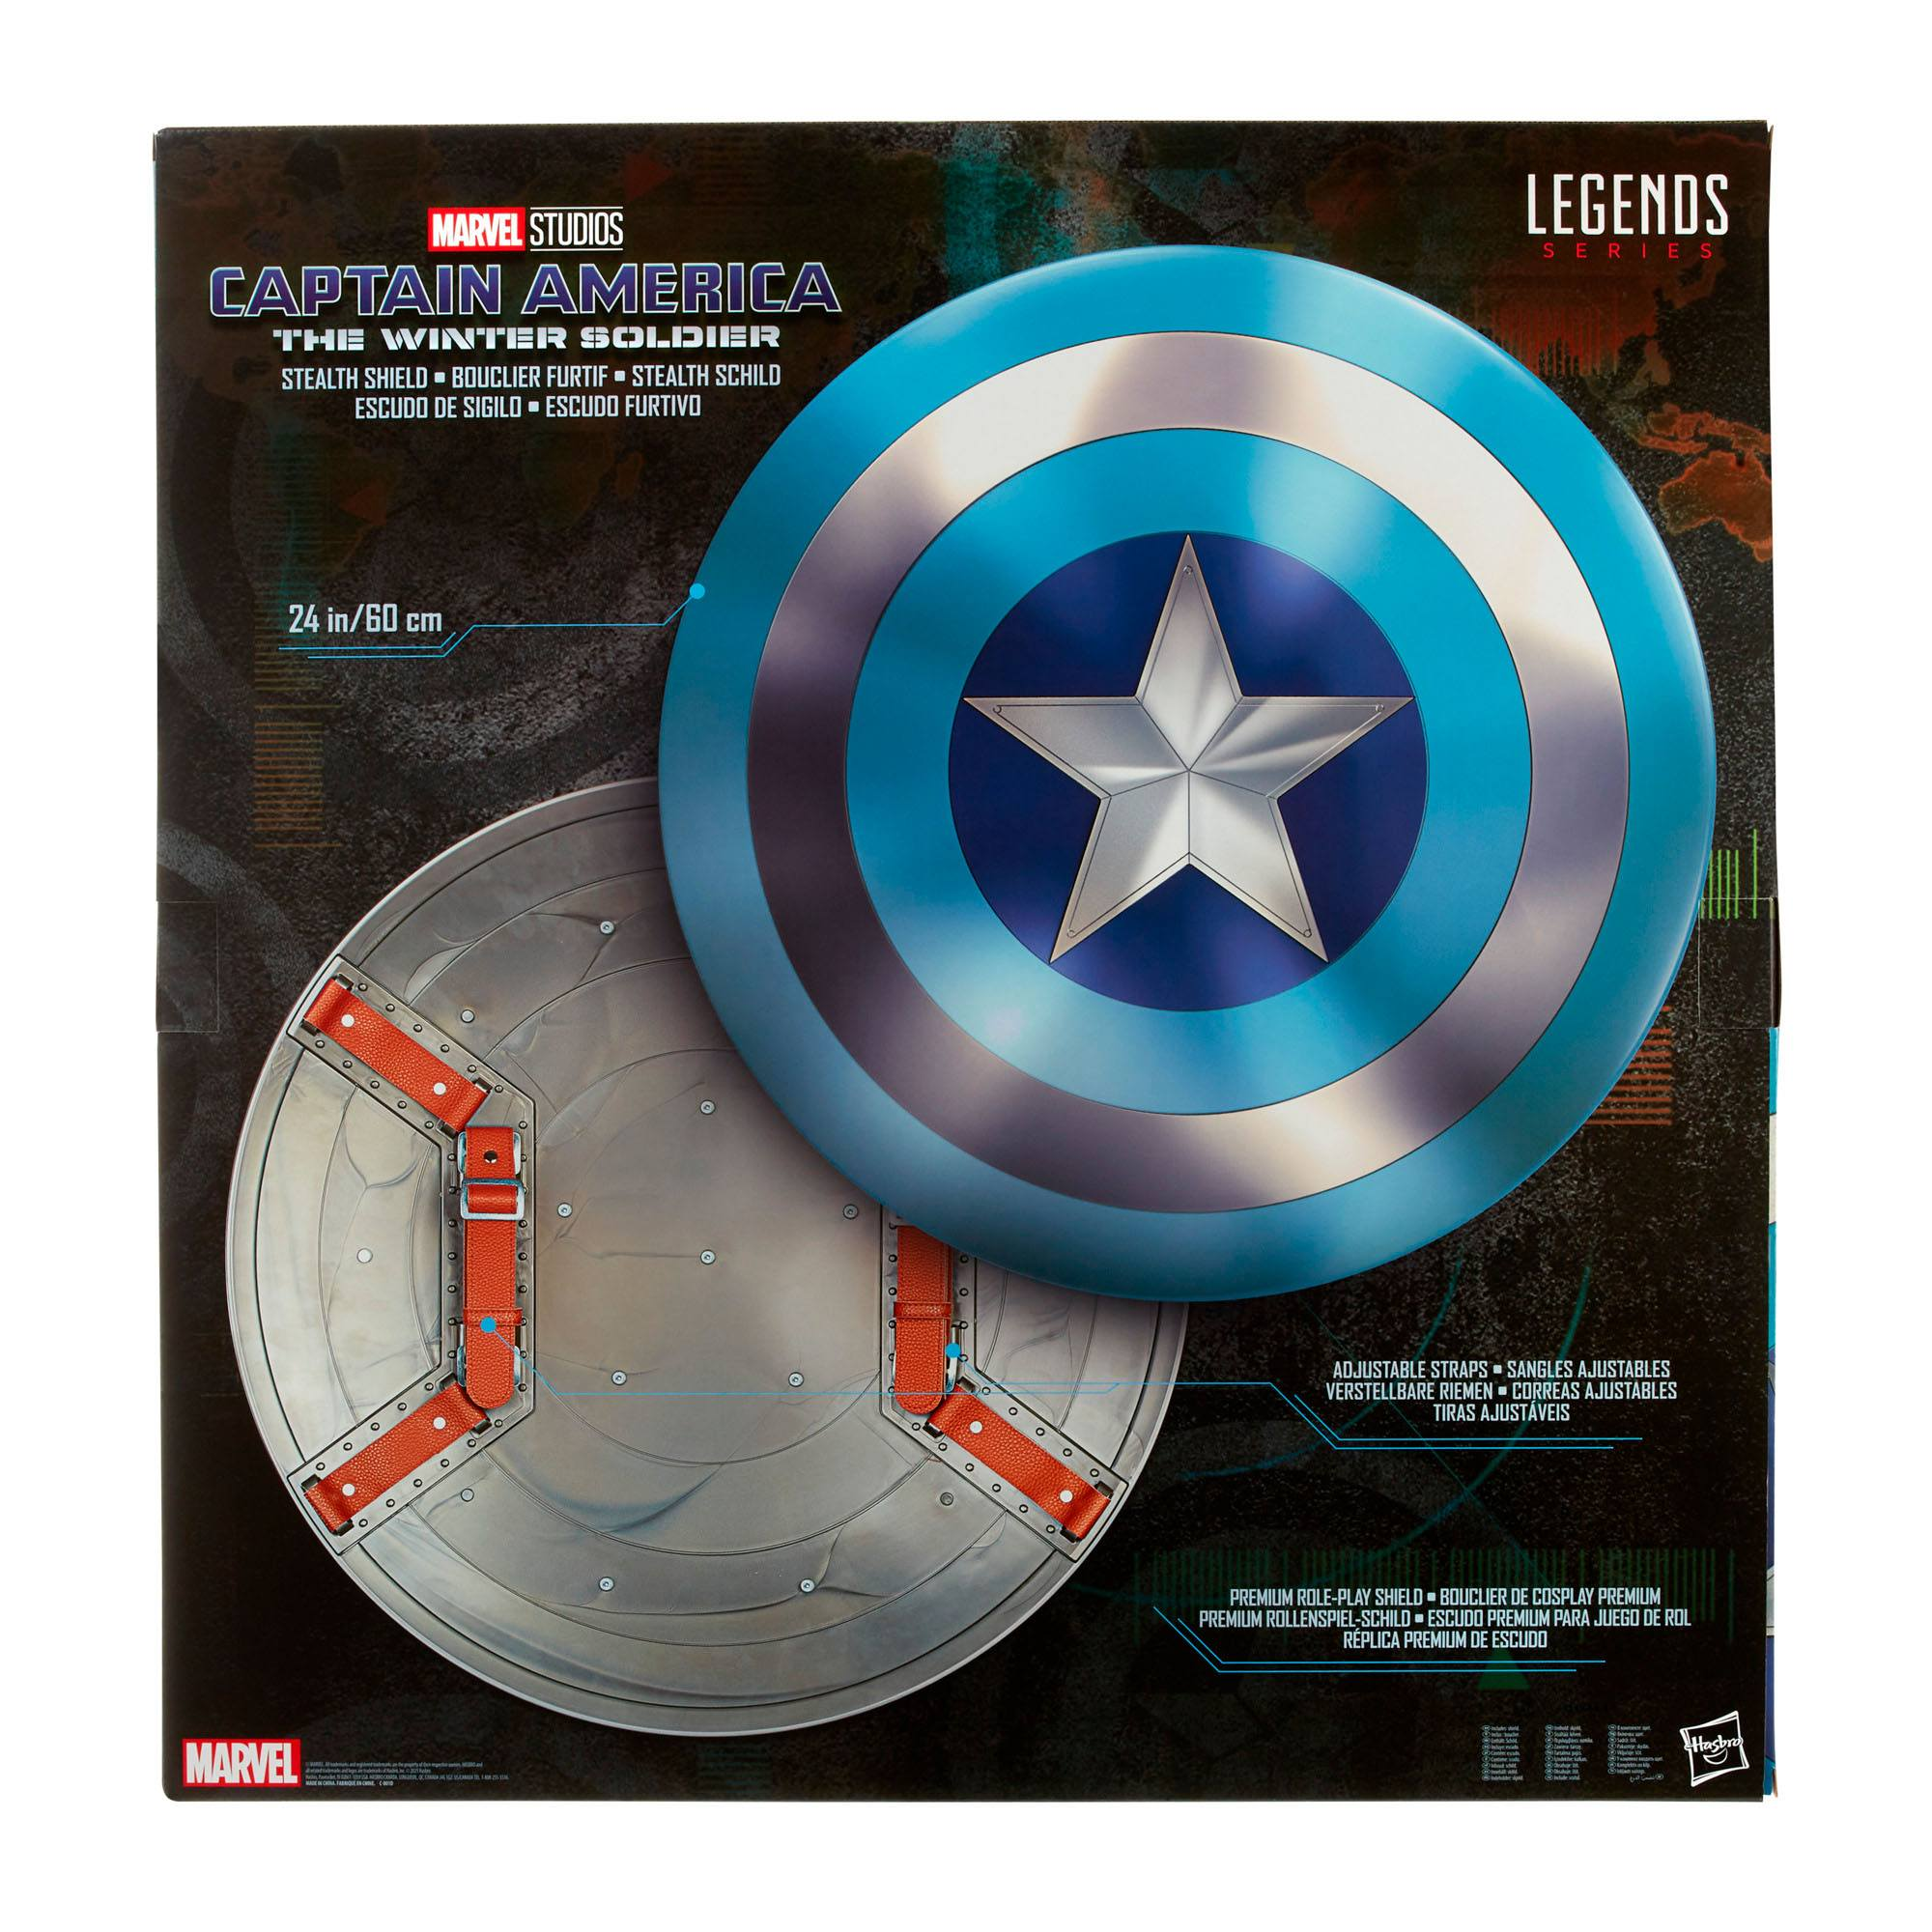 The Infinity Saga - The Return of the First Avenger Marvel Legends Series Stealth Schild 60 cm HASF1125 5010993842018